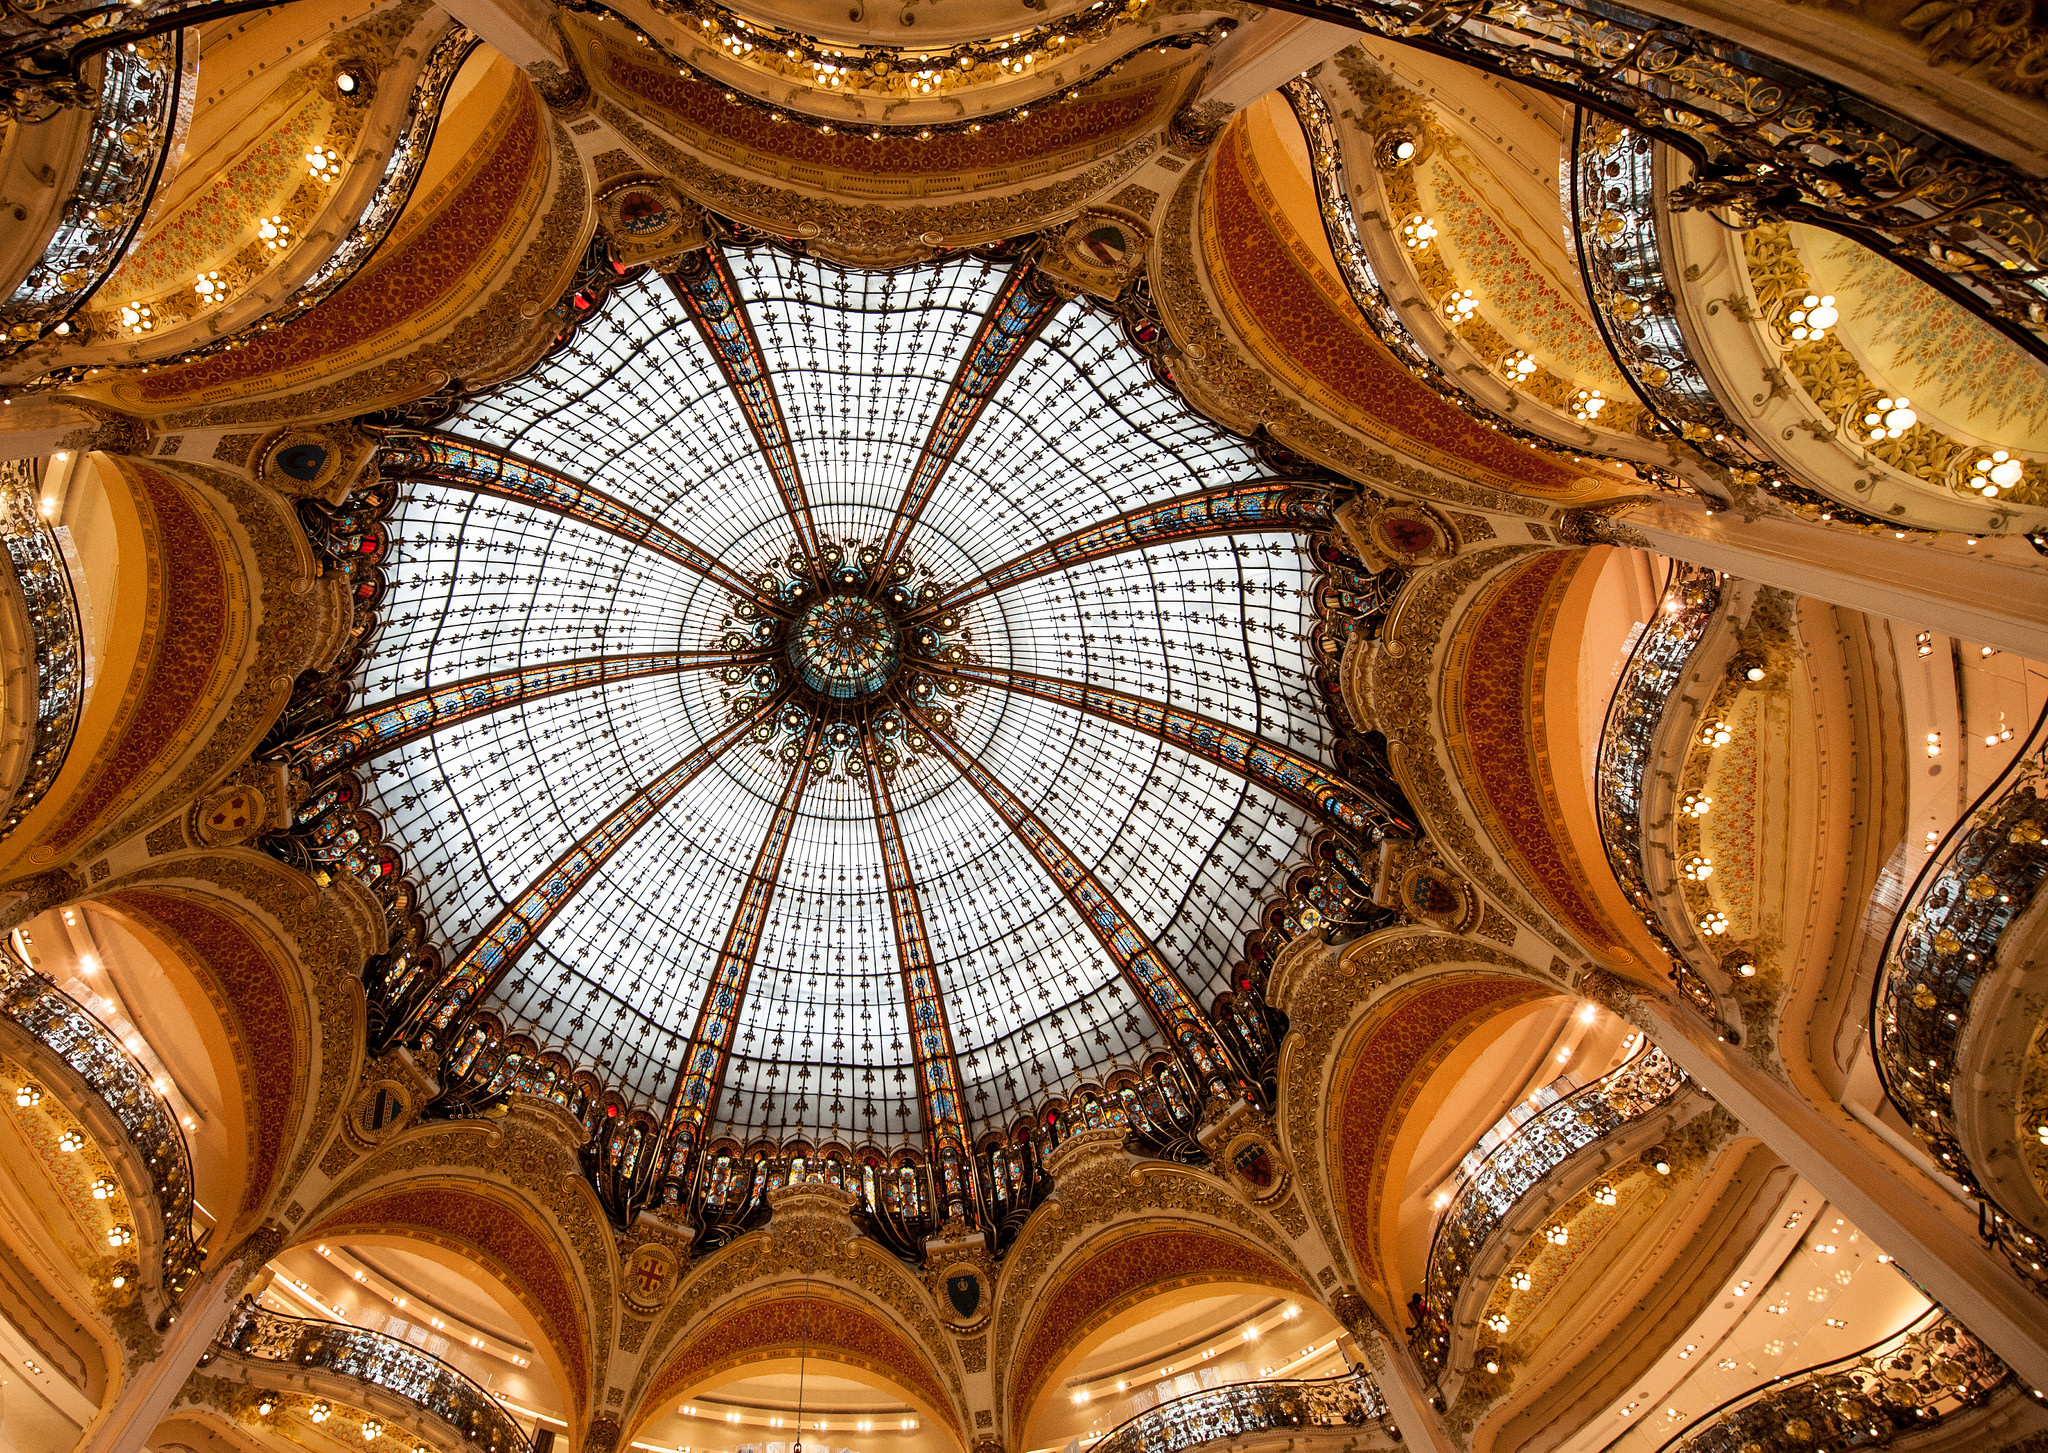 galeries lafayette shopping mall in paris thousand wonders